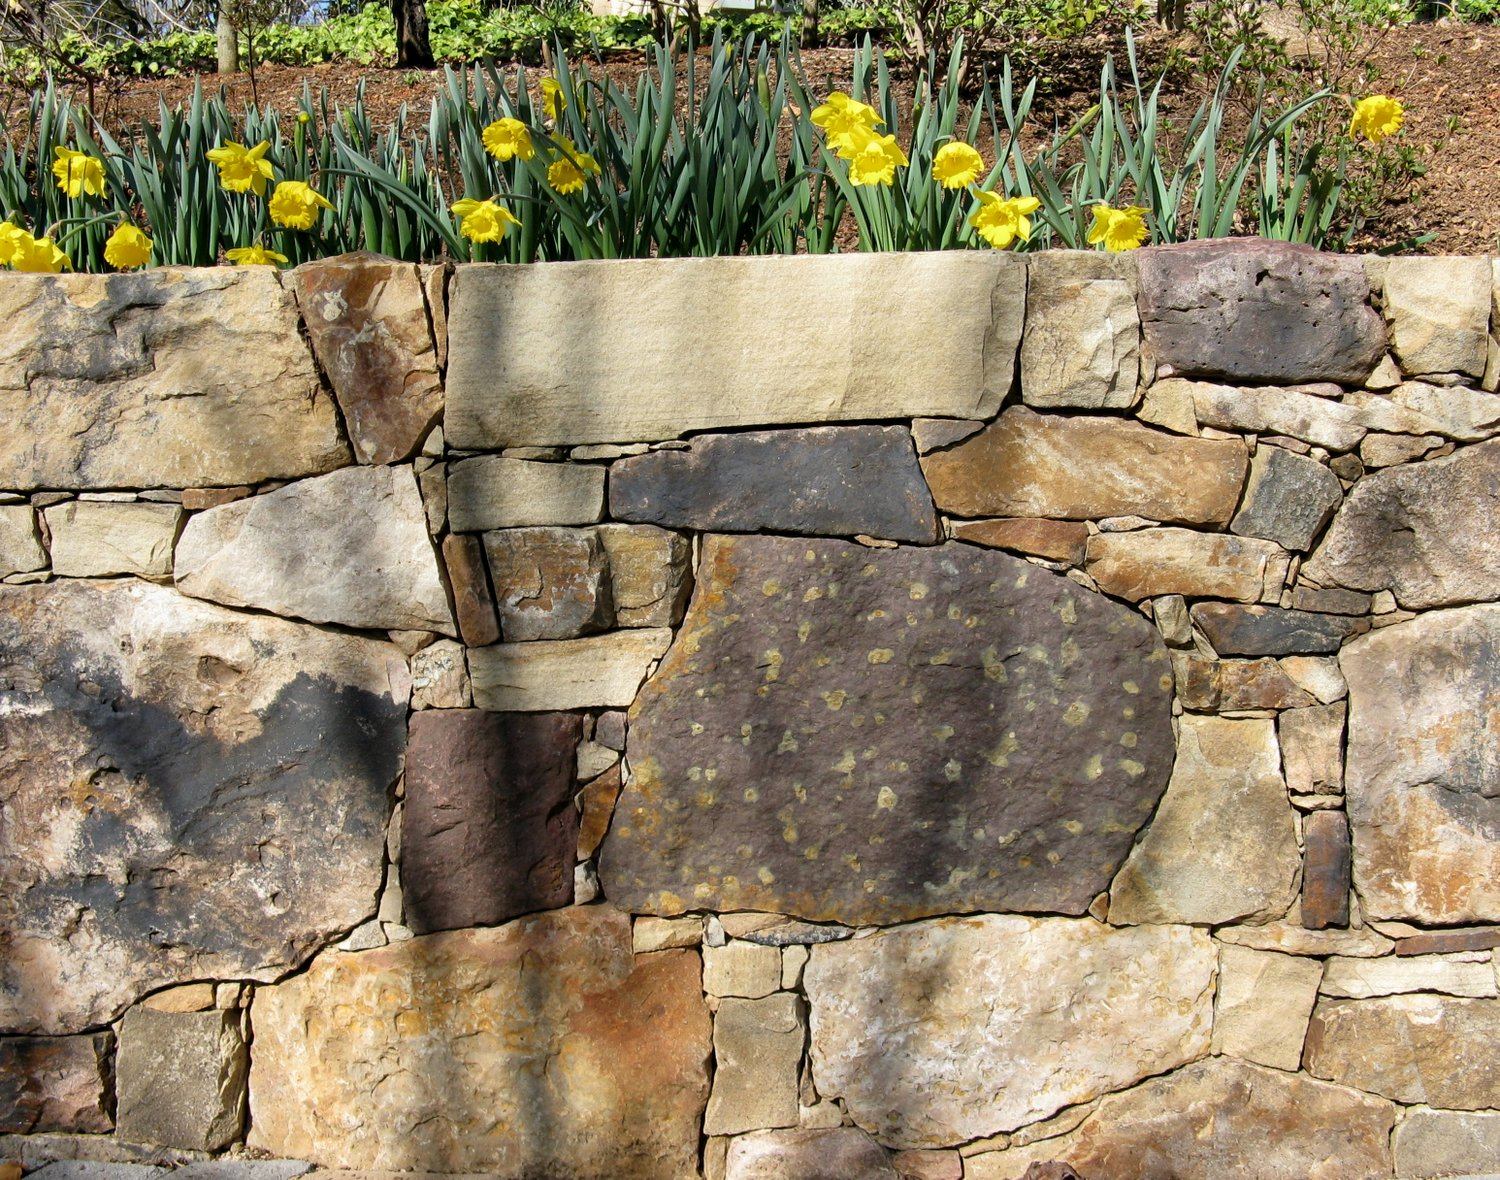 Daffodils along a stone wall announce spring.